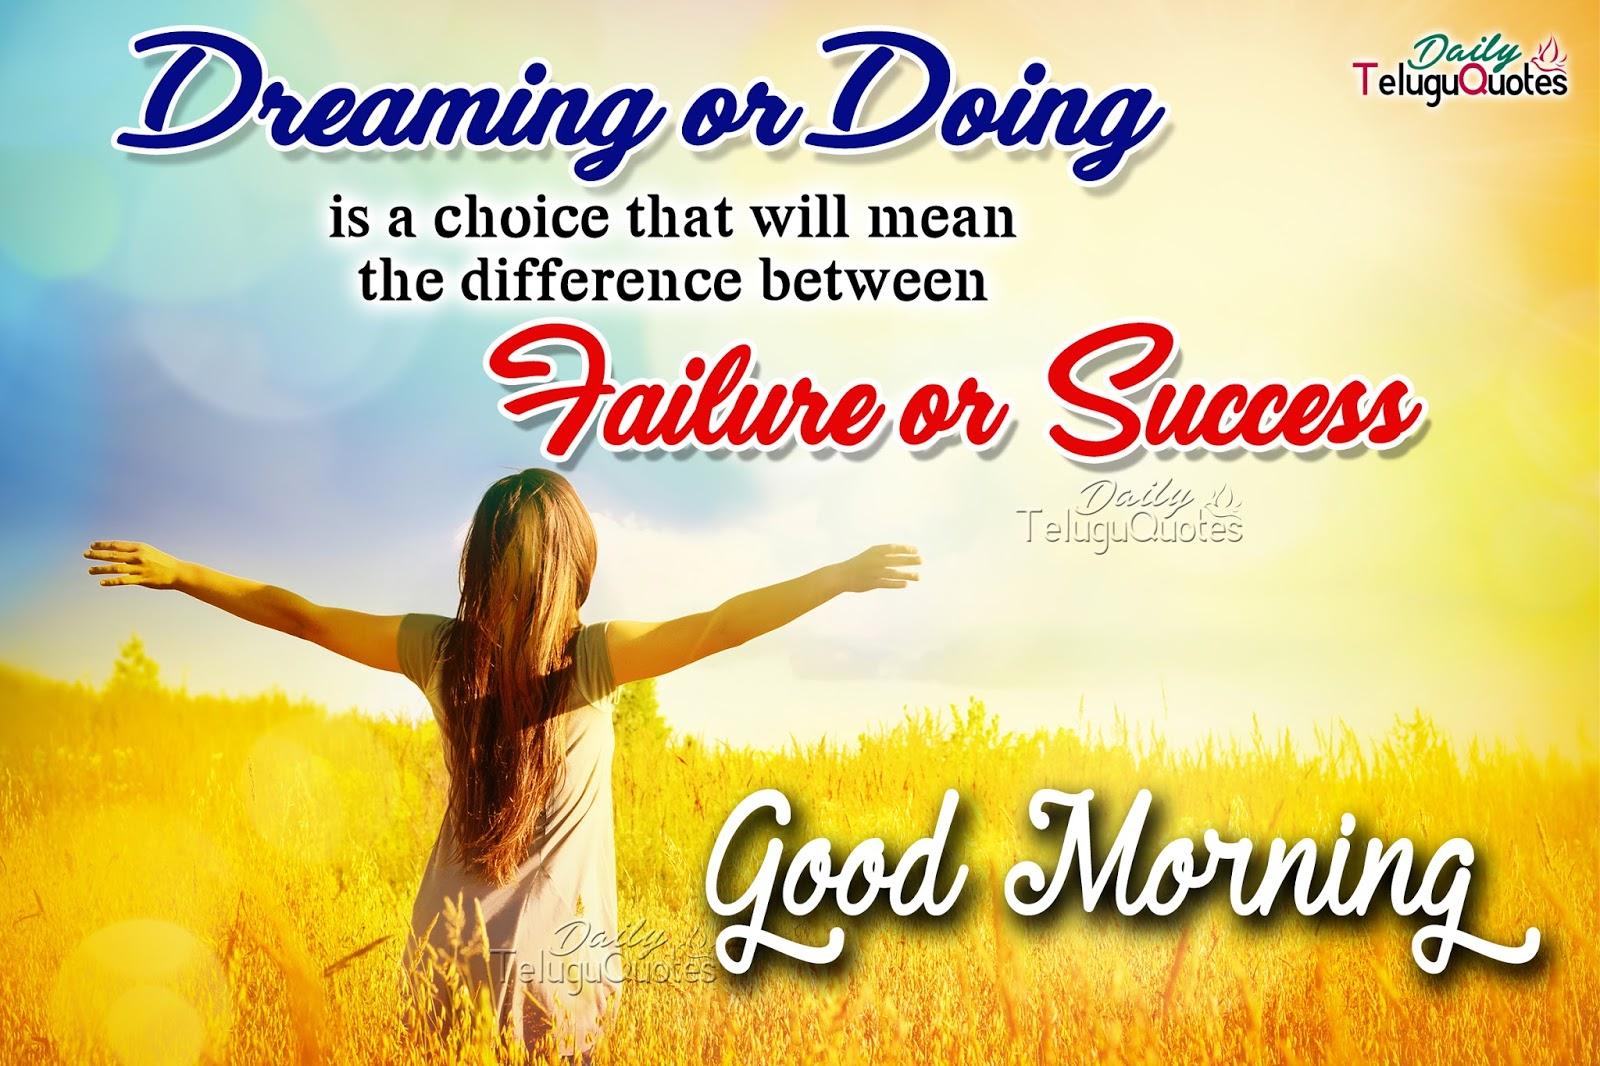 Good Day Quotes Best Good Morning Wishes Quotes And Greetings About Failure And